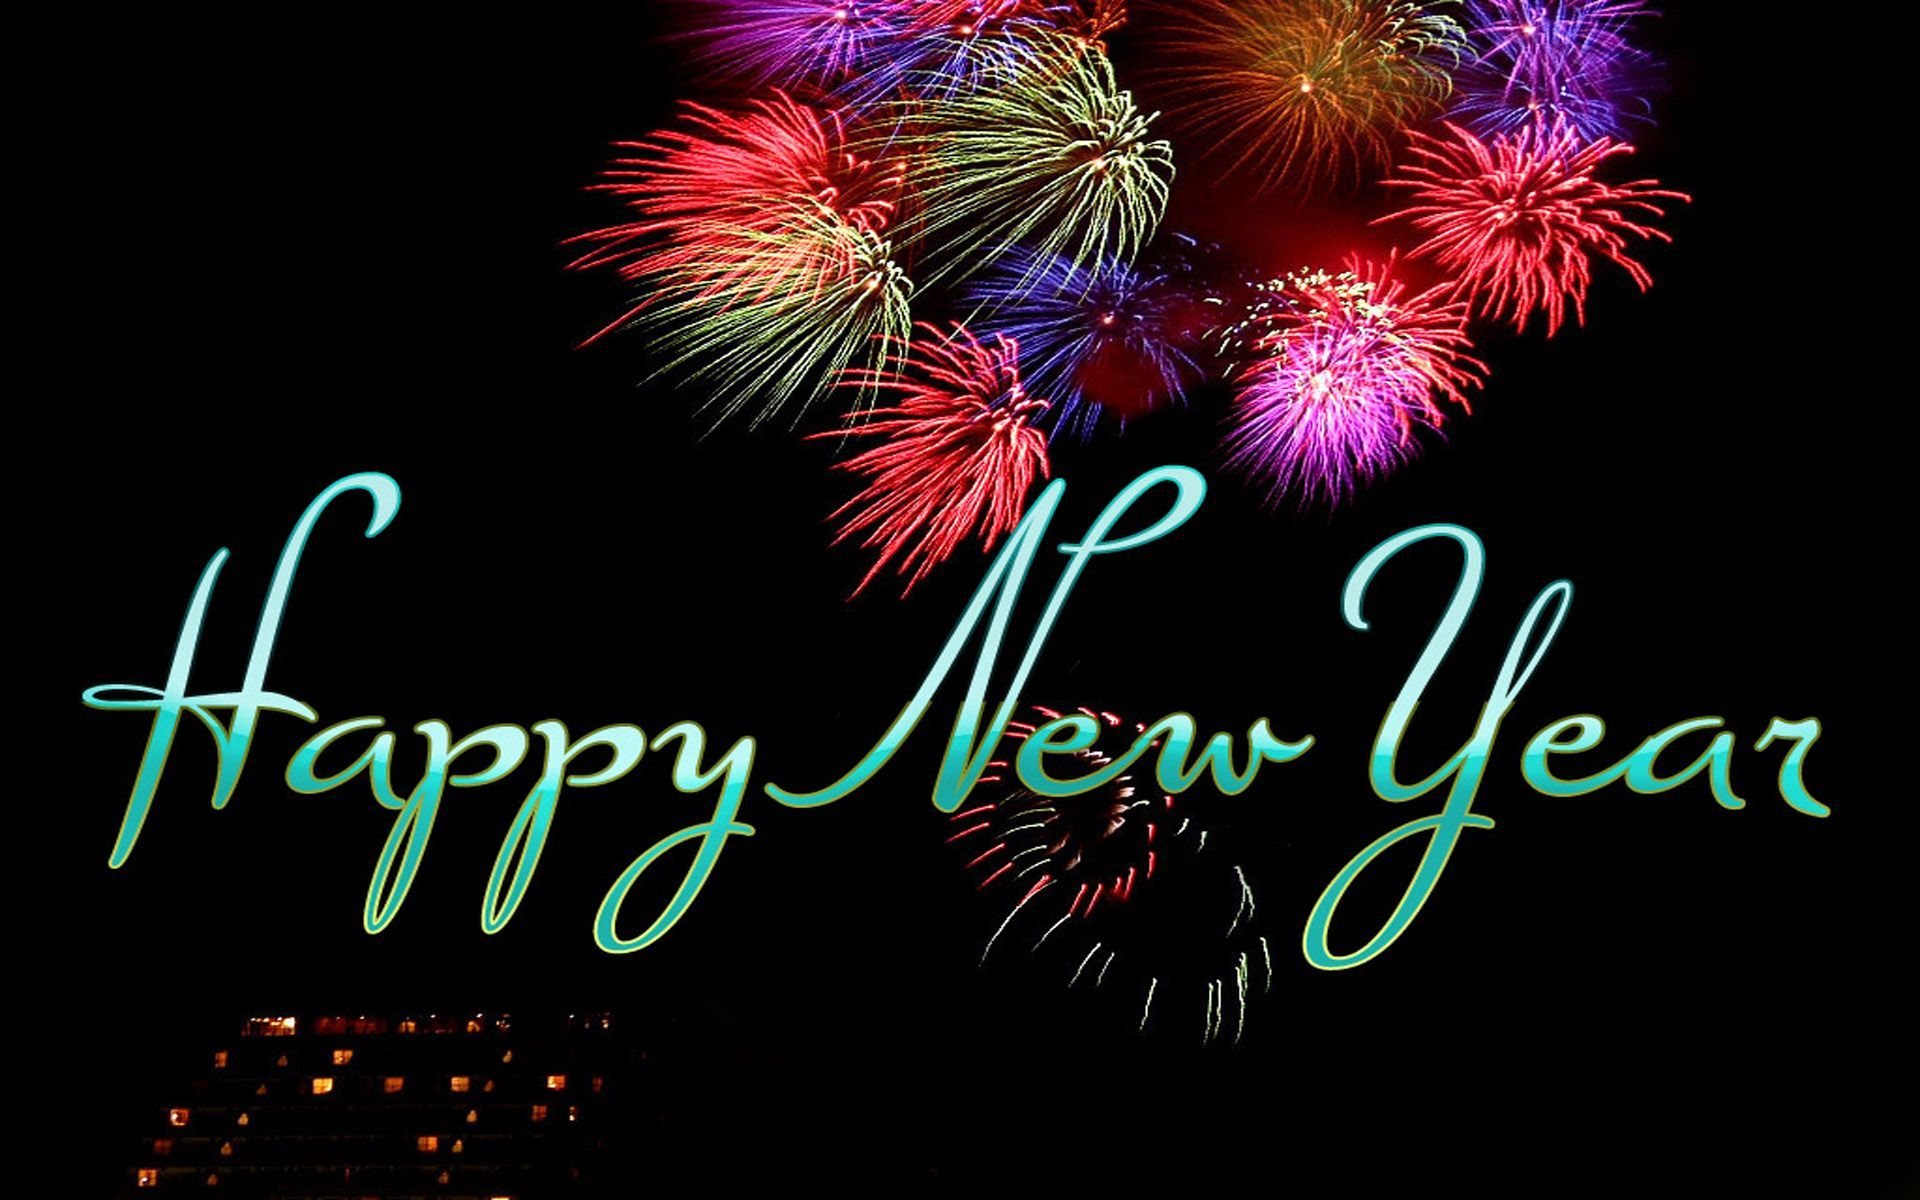 Happy New Year image Hd Wallpapers Pictures Photo Pics Free